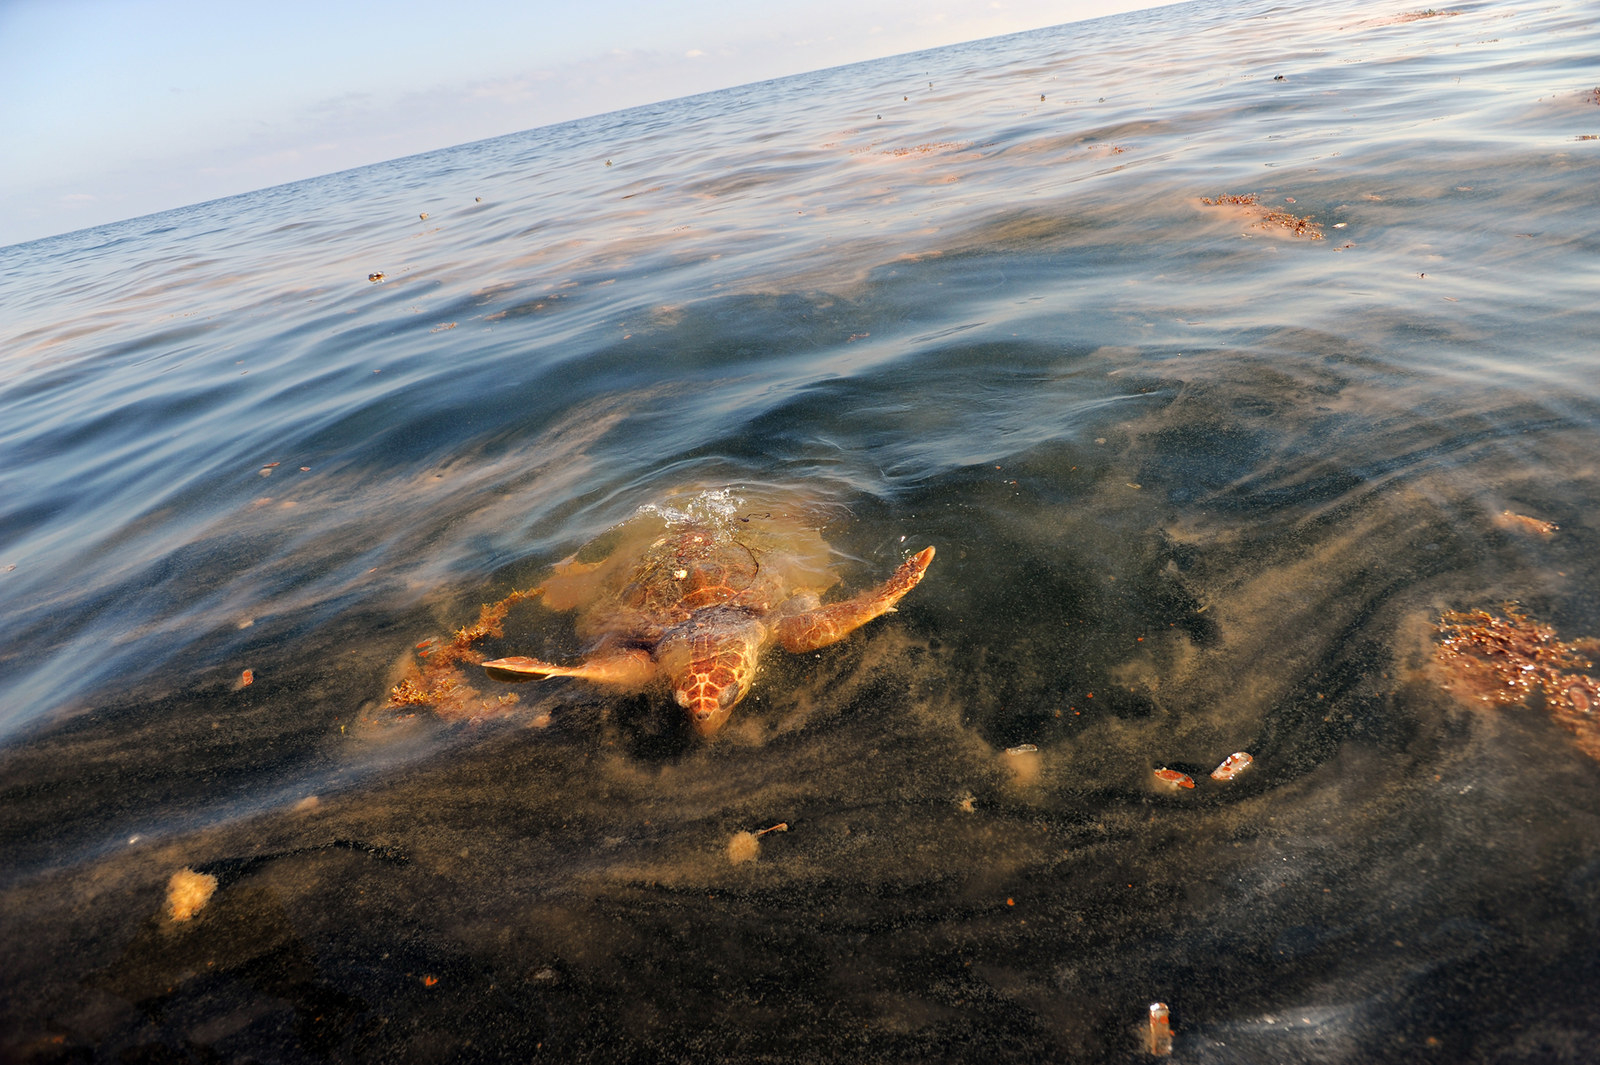 A sea turtle surfaces to feed on Portuguese man o' war that have been contaminated with oil due to the spill from the Deepwater Horizon rig in South Pass, Louisiana, on May 5, 2010.